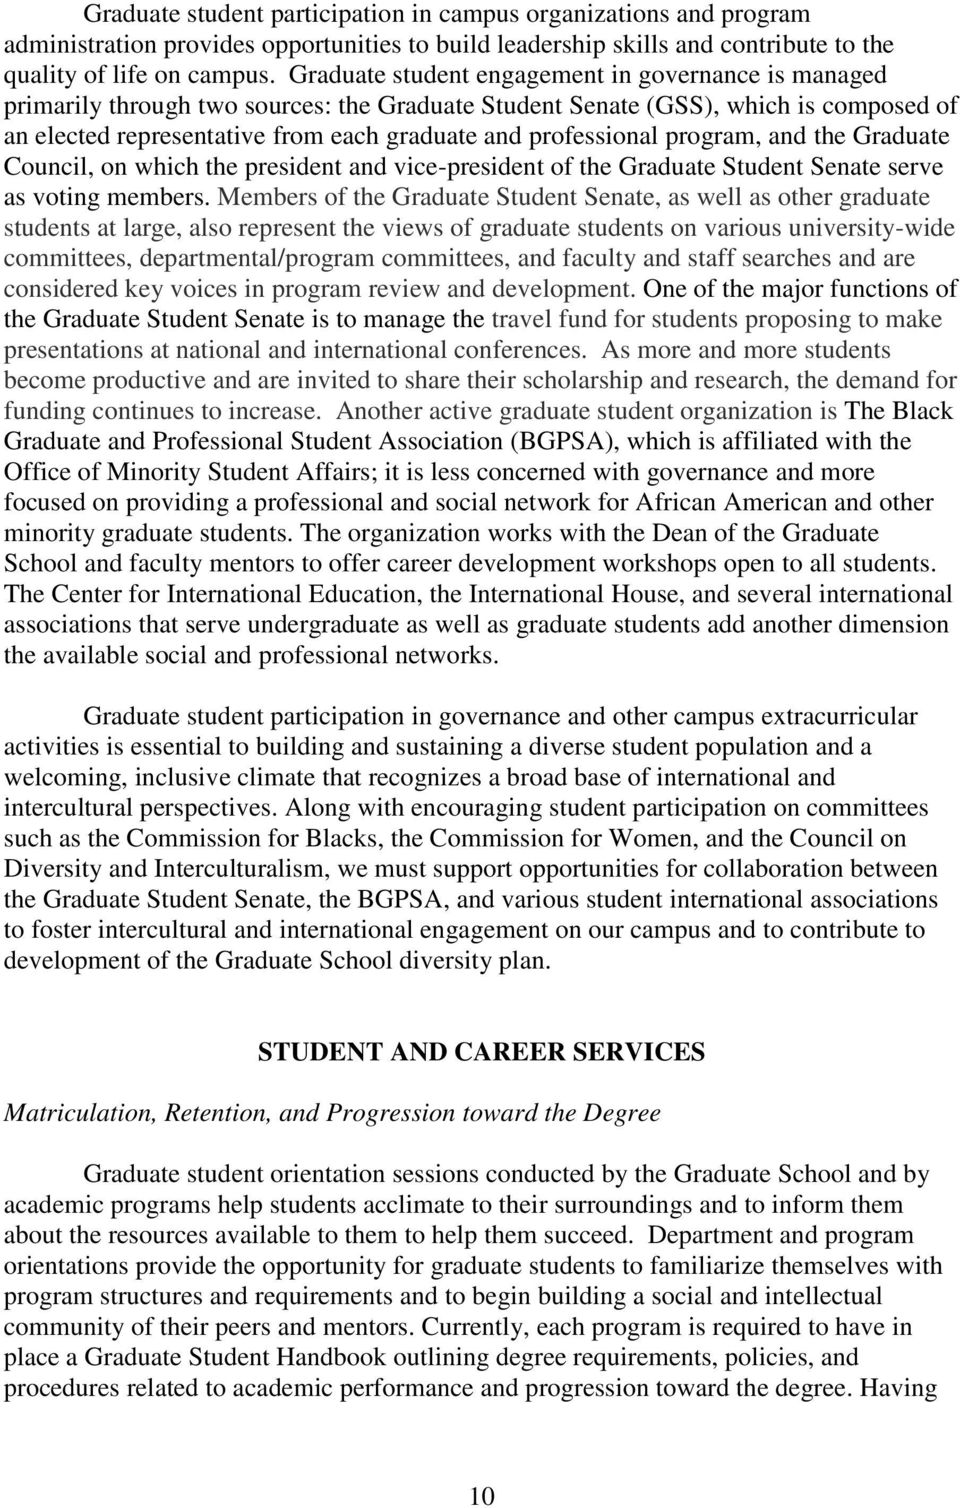 professional program, and the Graduate Council, on which the president and vice-president of the Graduate Student Senate serve as voting members.